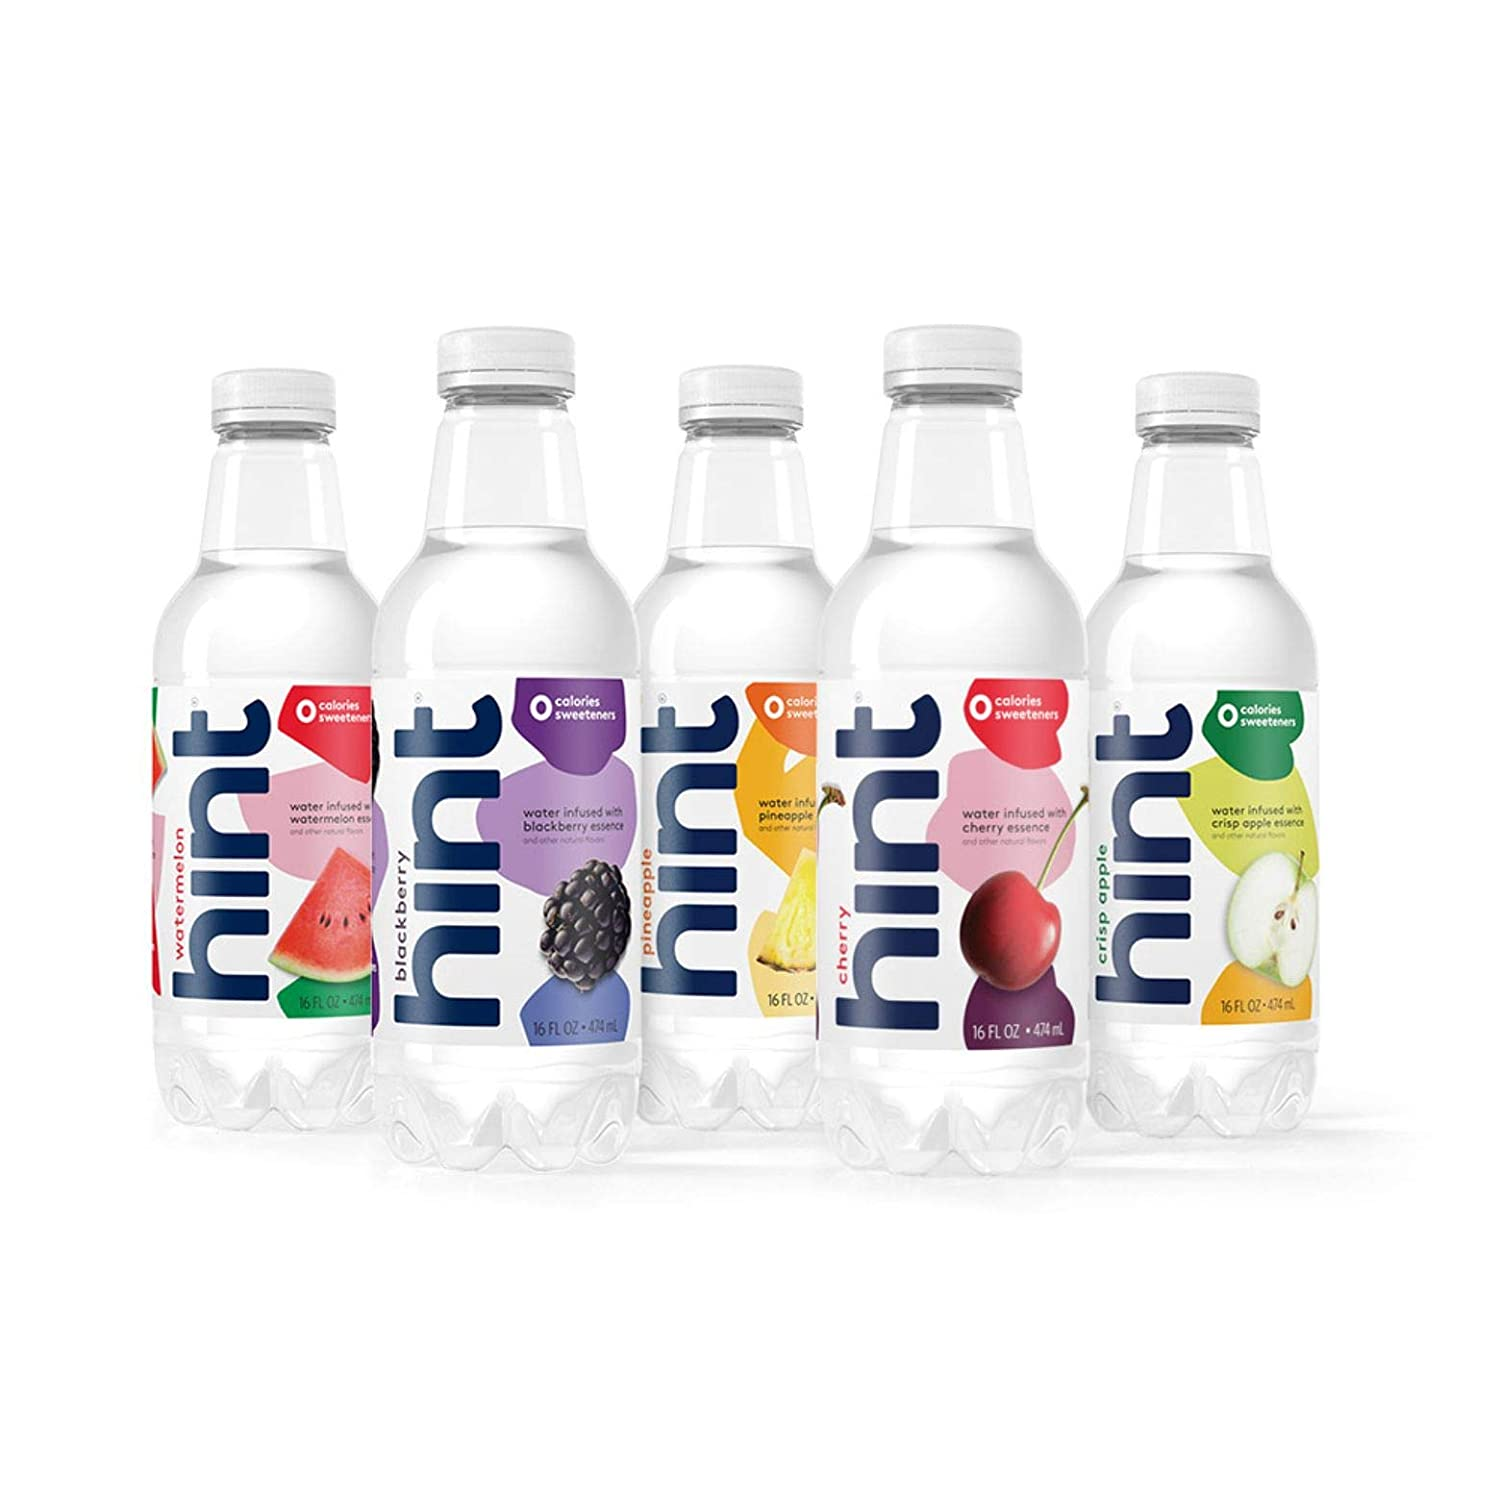 16oz Hint Water (Pack of 24) - 3 Bottles Each of: Blackberry, Cherry, Watermelon, and Pineapple & 12 Crisp Apple! Zero Calories, Zero Sugar and Zero Diet Sweetener